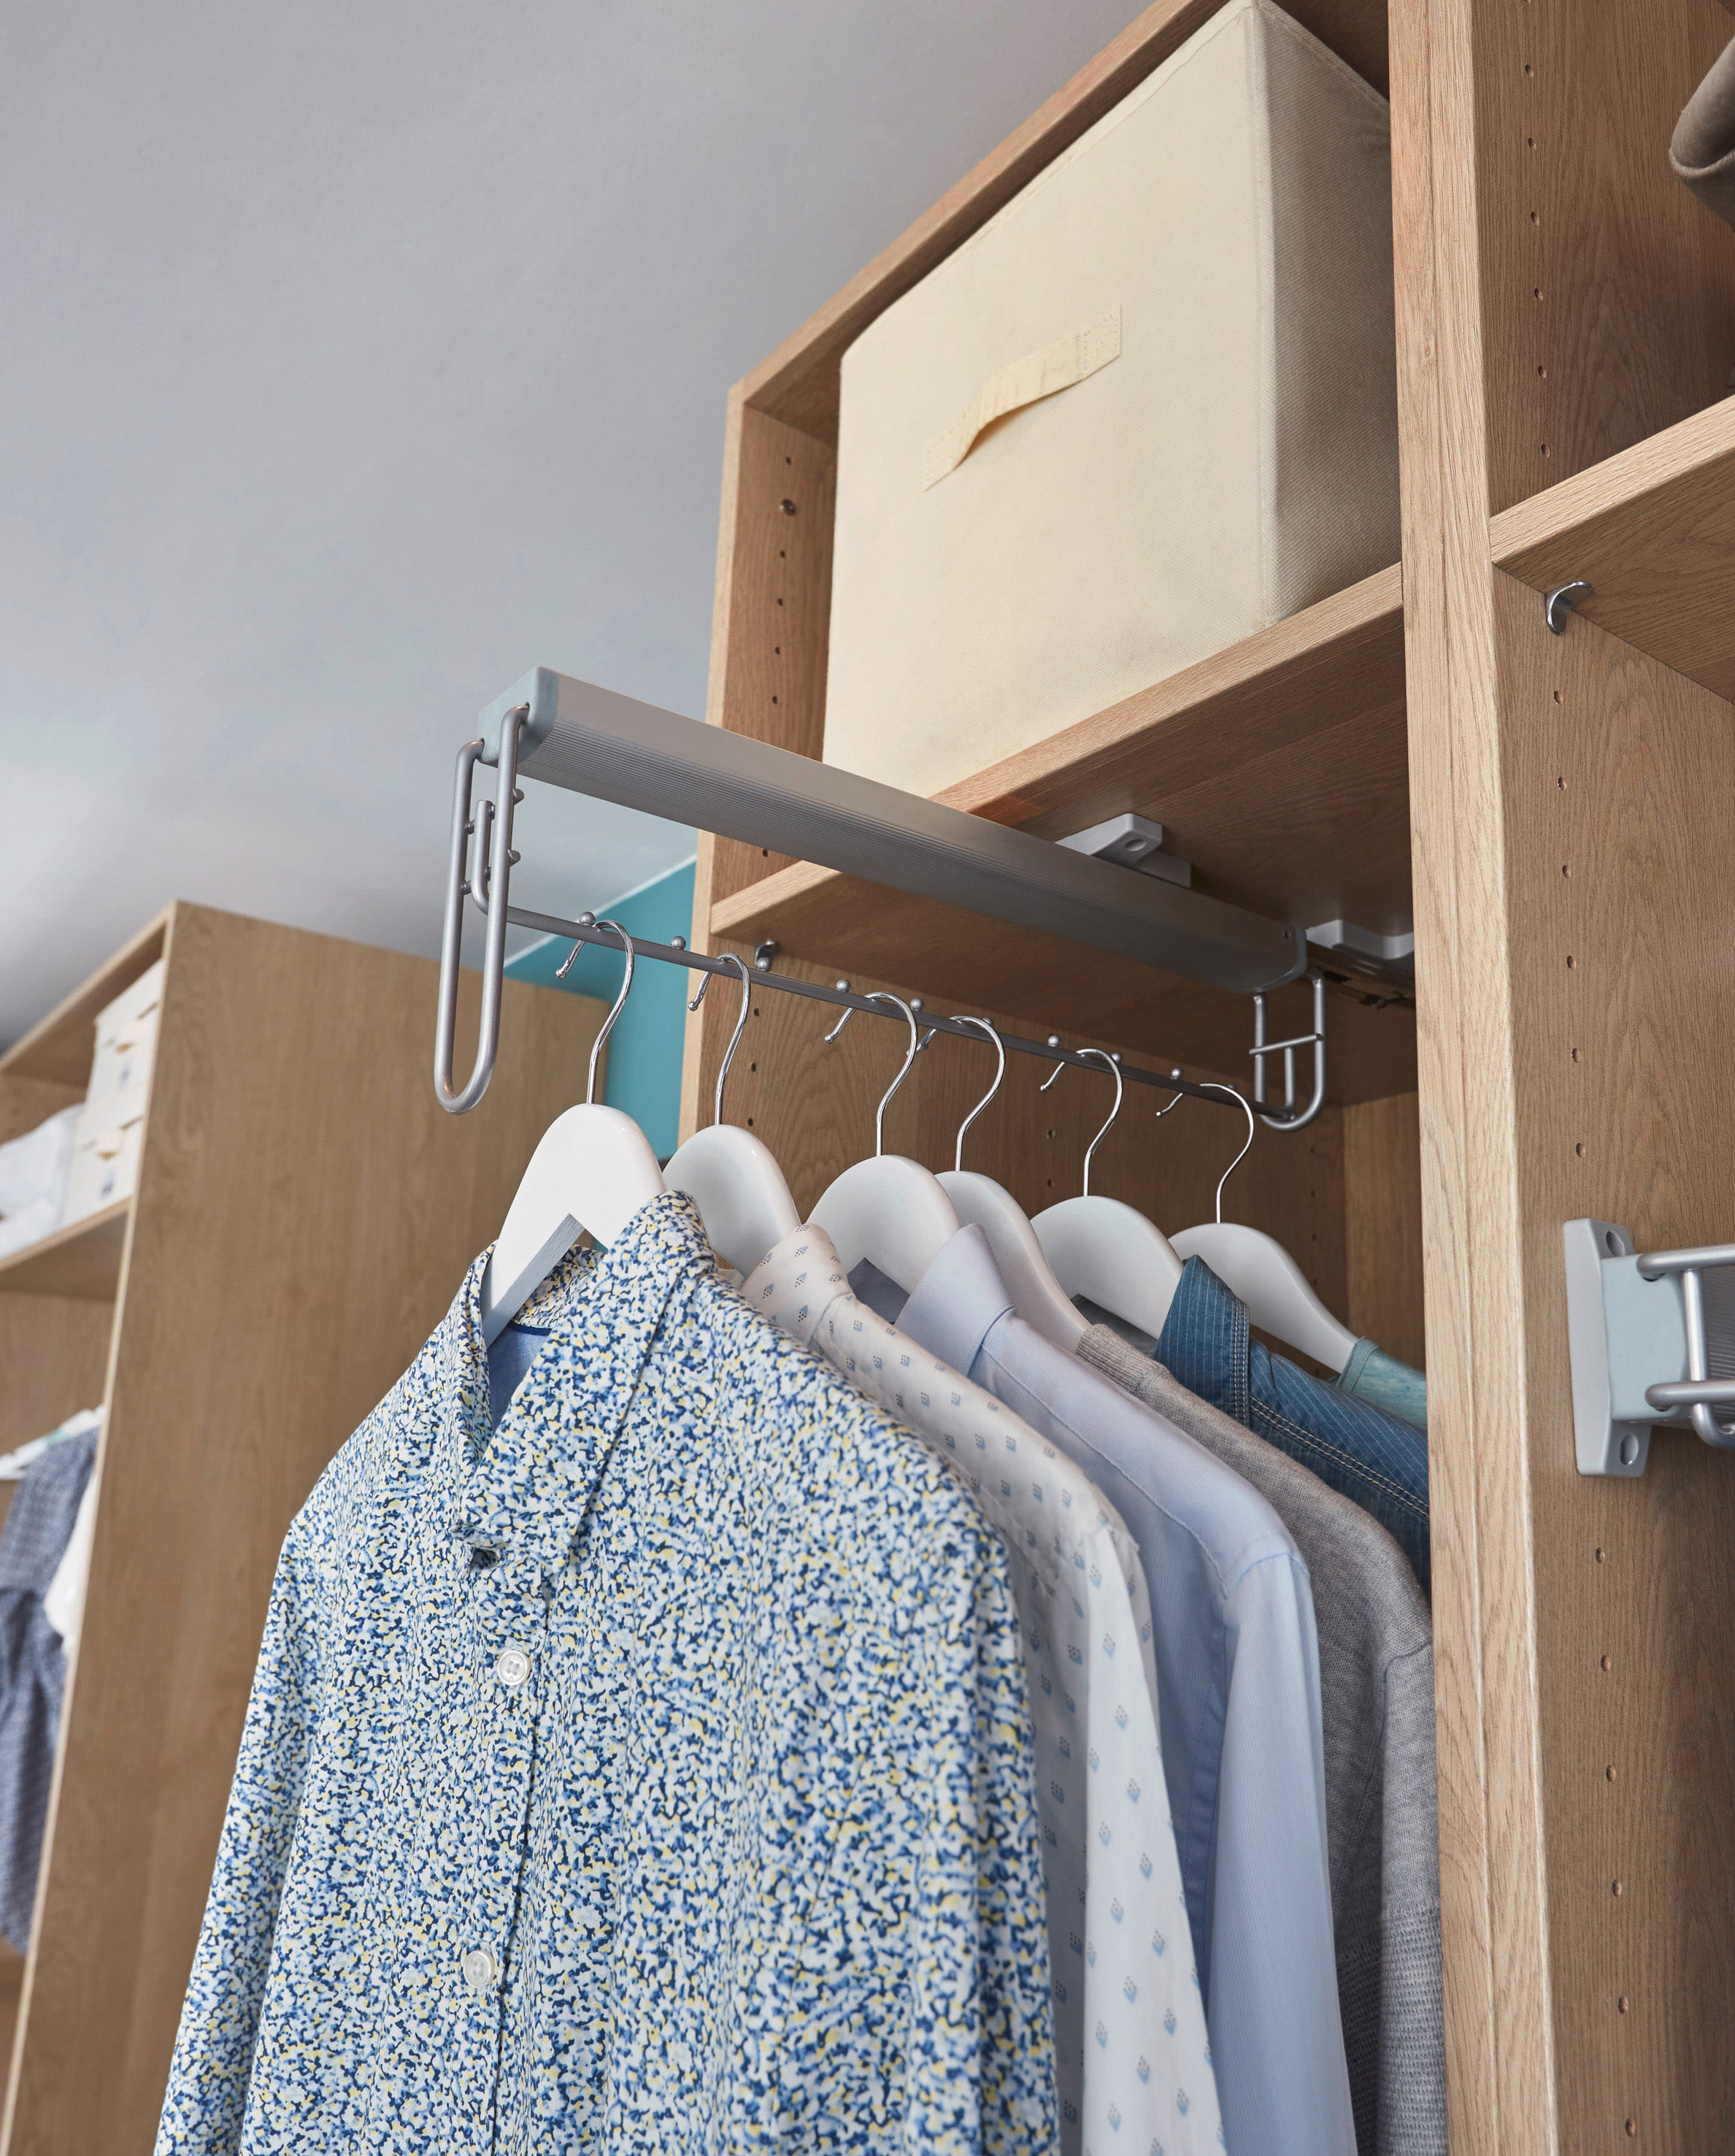 Comment organiser et optimiser un dressing for Barre de penderie escamotable